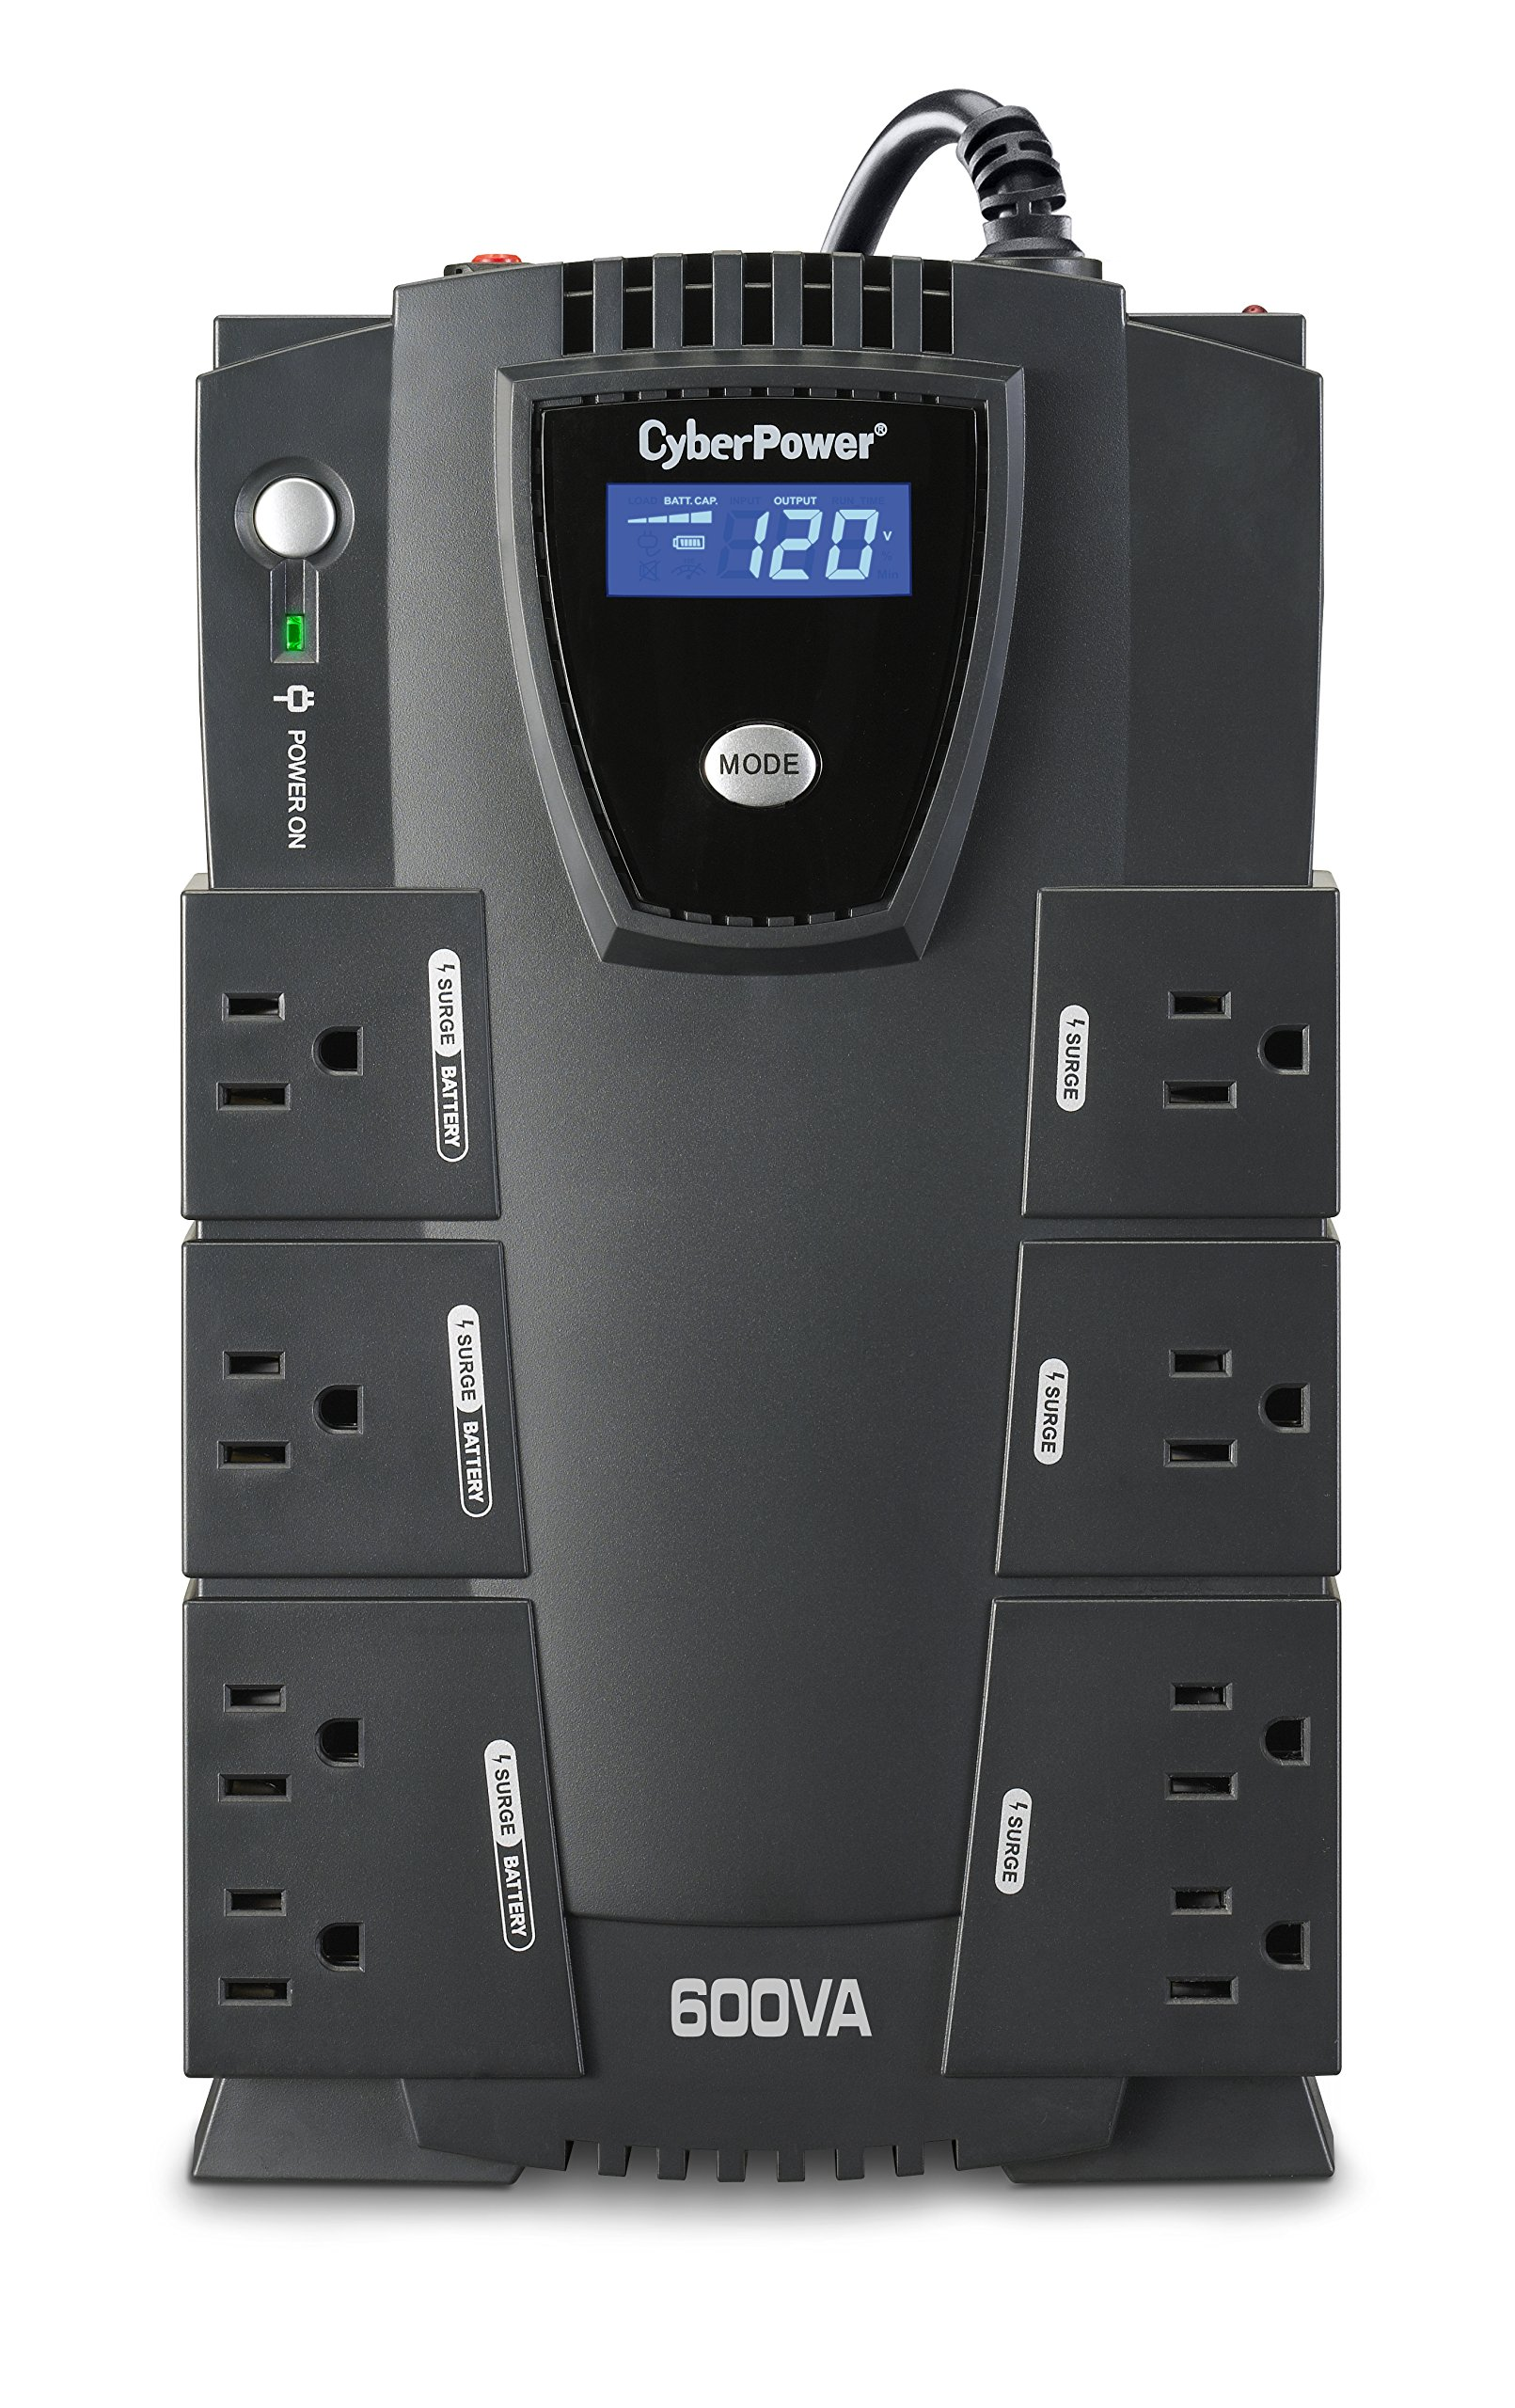 CyberPower CP600LCD Intelligent LCD UPS System, 600VA/340W, 8 Outlets, Compact